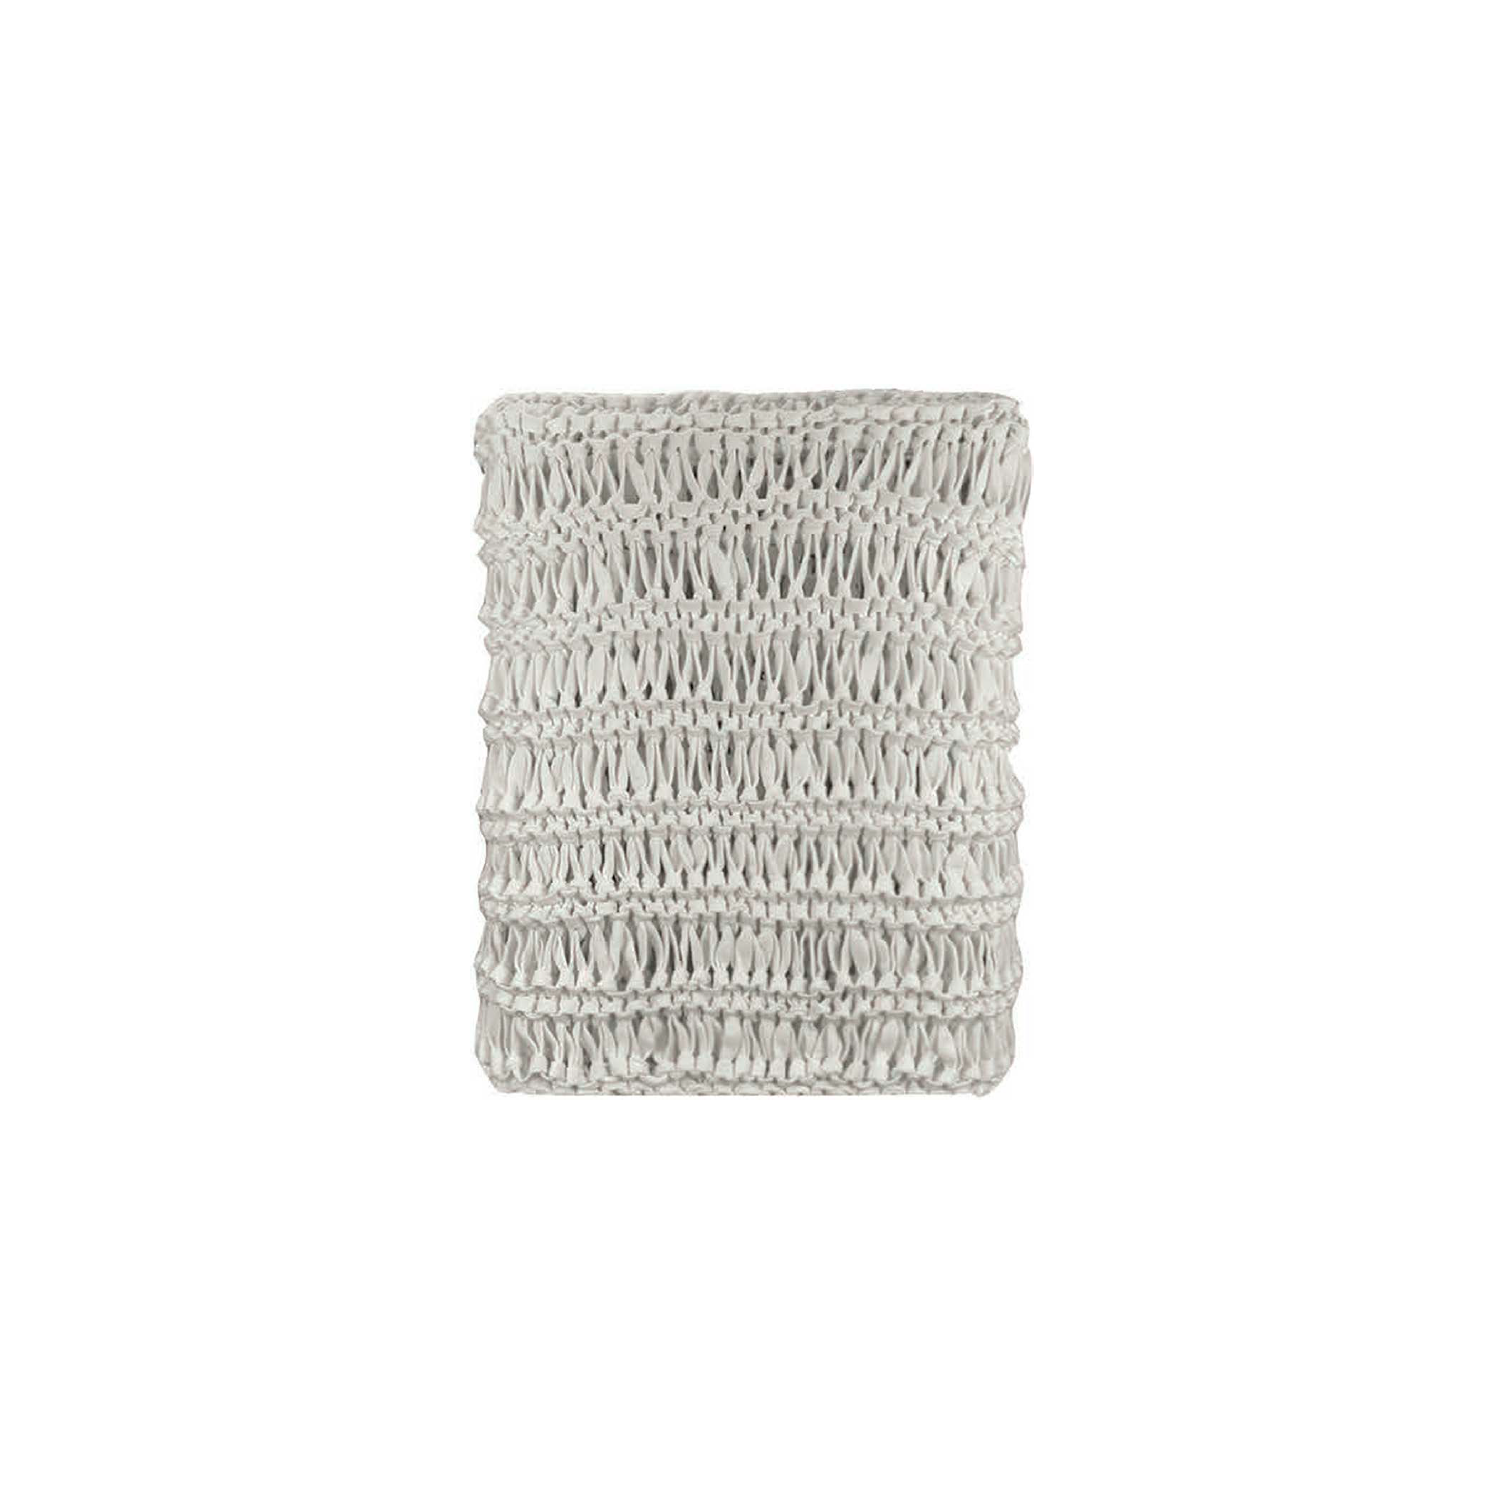 Antwerp Knitted Cotton Throw - The Antwerp Line is carefully knitted within a trained community of women that found in their craft a way to provide for their families, each one of these cushions and throws is unique.  Elisa Atheniense Home soft indoors collection is made with natural cotton fibres, eco-friendly, handwoven or elaborated using traditional hand-loom techniques. The use of organic materials brings softness and comfort to the space. This collection combines their mission for responsible sourcing and manufacturing.  Please enquire for more information and see colour chart for reference.   | Matter of Stuff